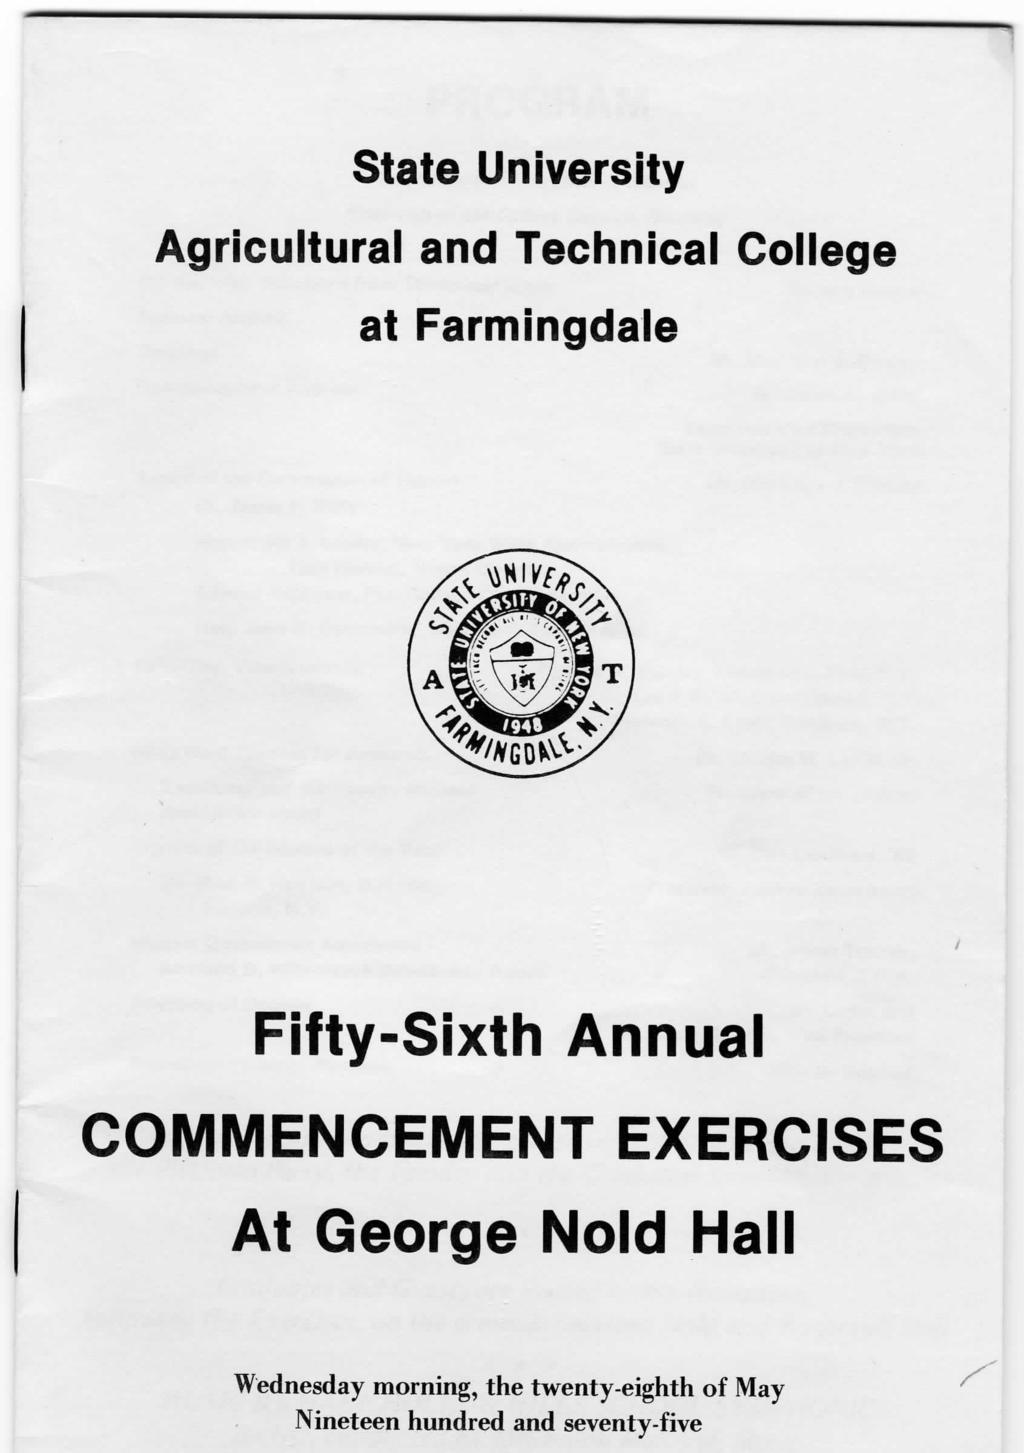 State University Agricultural and Technical College at Farmingdale Fifty-Sixth Annual COMMENCEMENT